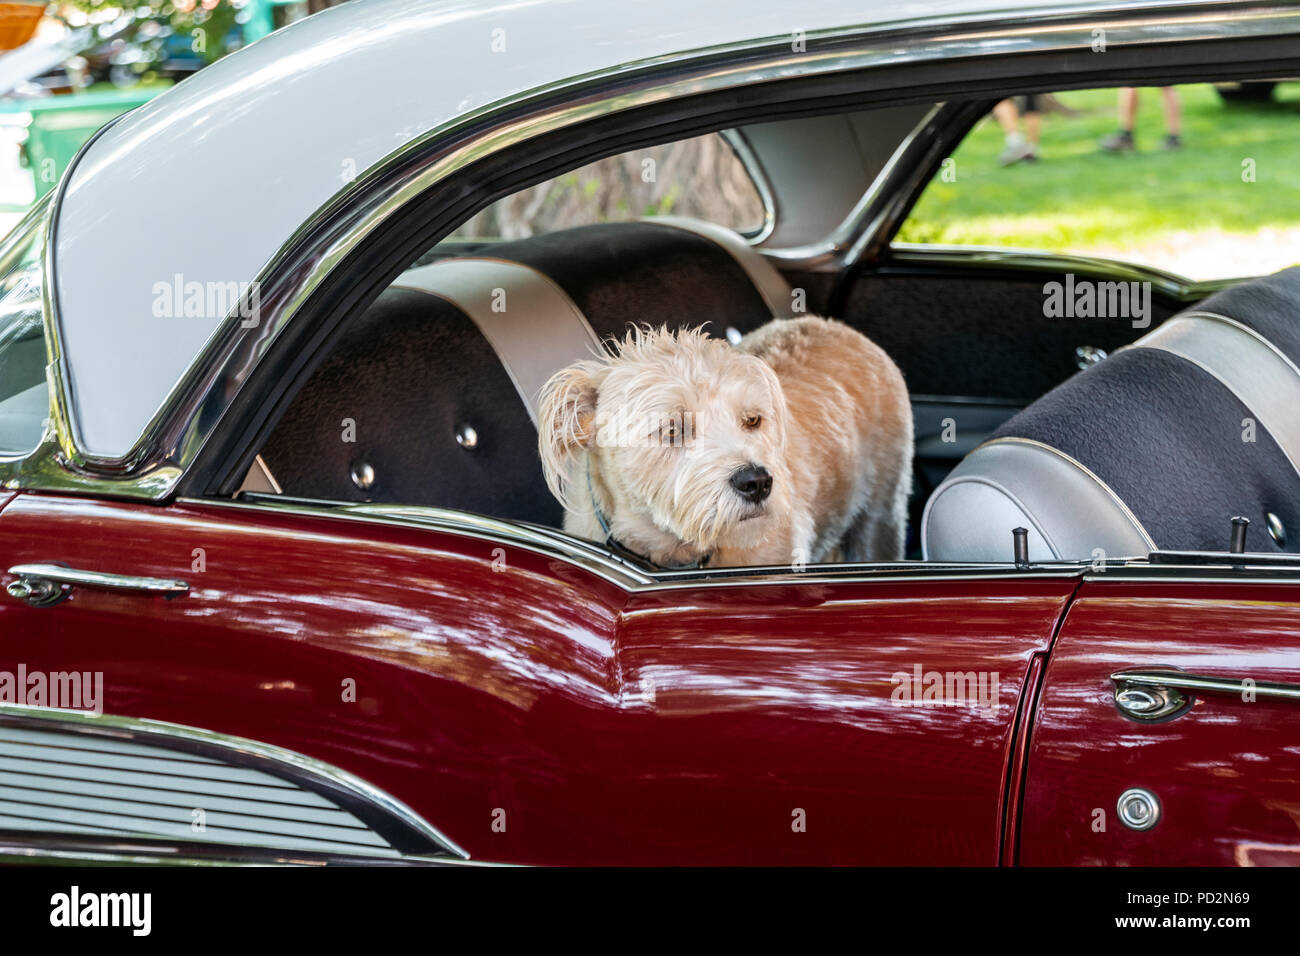 Small dog; 1957 Chevrolet 4 door hardtop; Angel of Shavano Car Show, fund raiser for Chaffee County Search & Rescue South, Salida, Colorado, USA - Stock Image